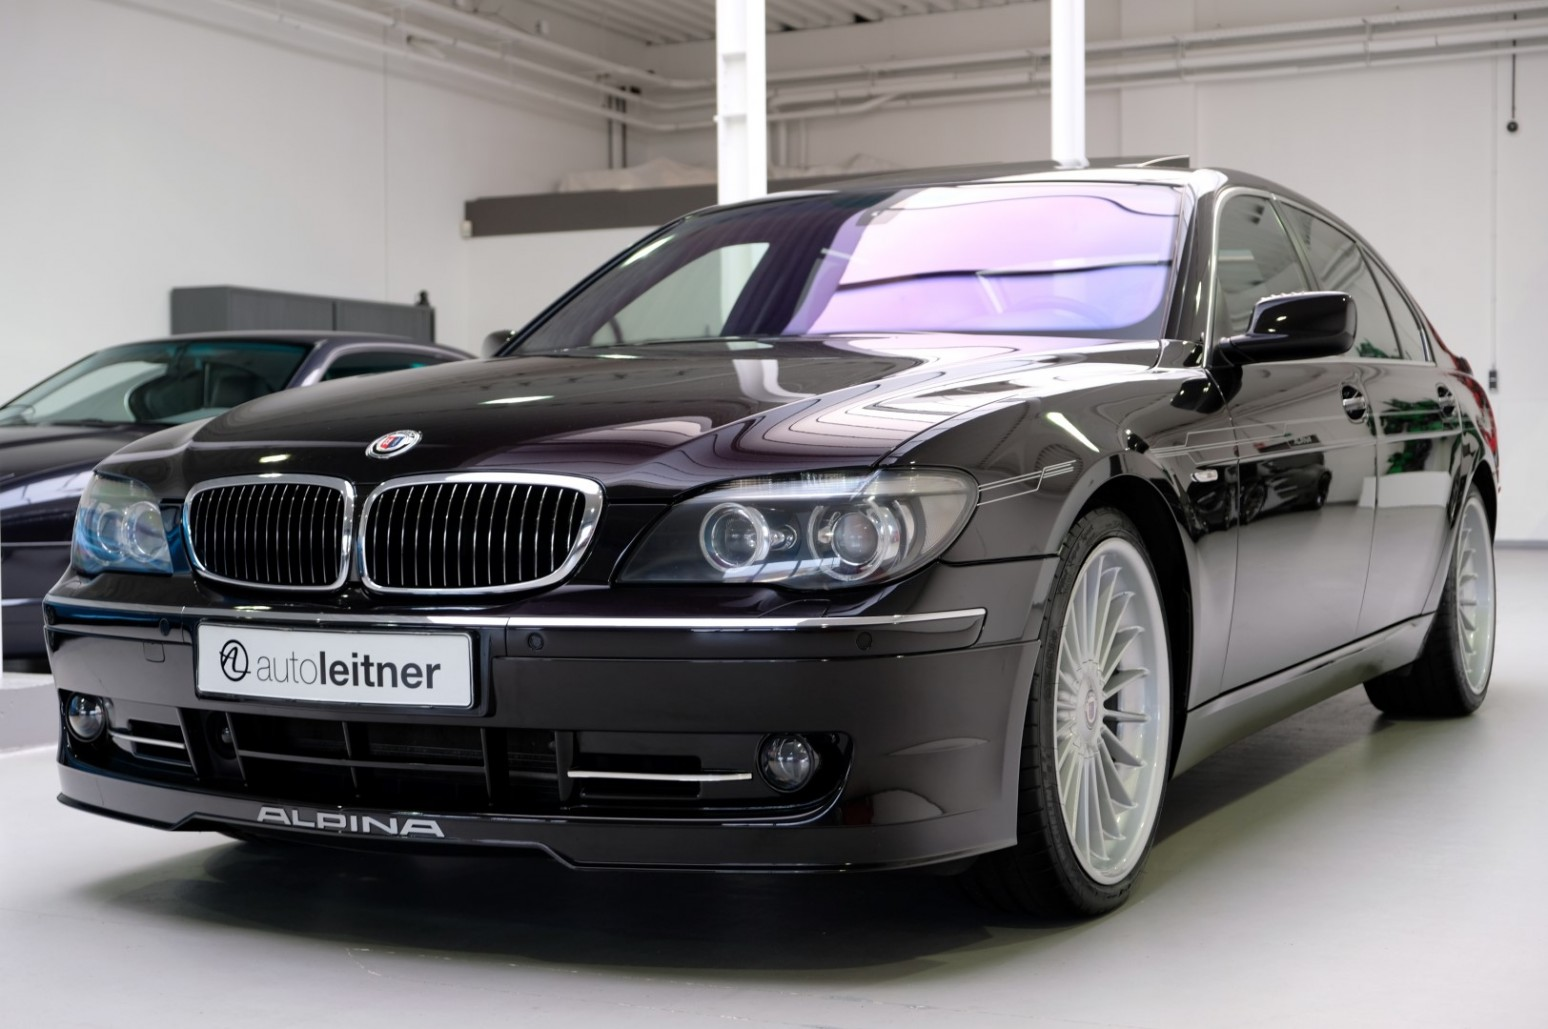 2006 bmw alpina b7 lang supercharged e66 rubinschwarz metallic for sale at auto leitner. Black Bedroom Furniture Sets. Home Design Ideas